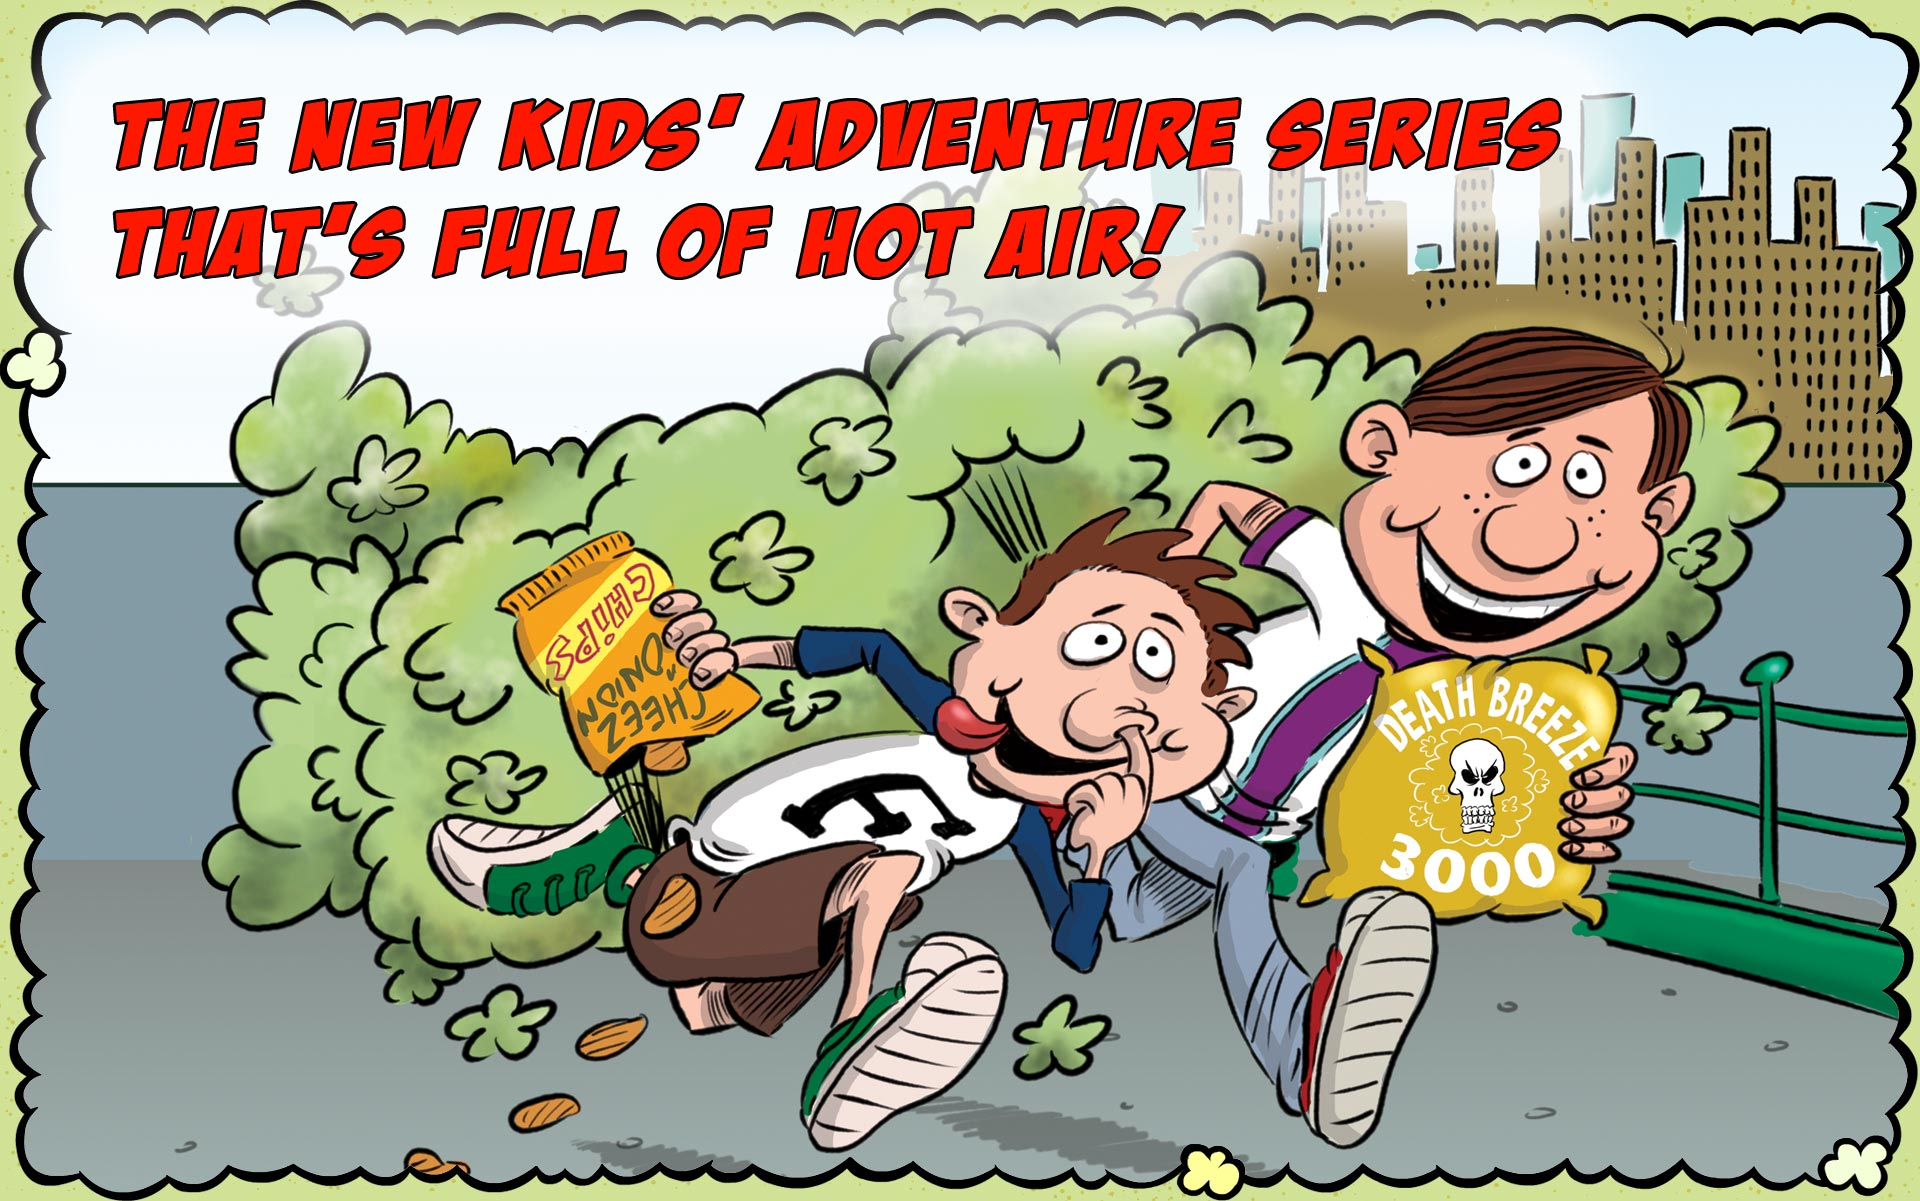 The stinky new adventure series for kids